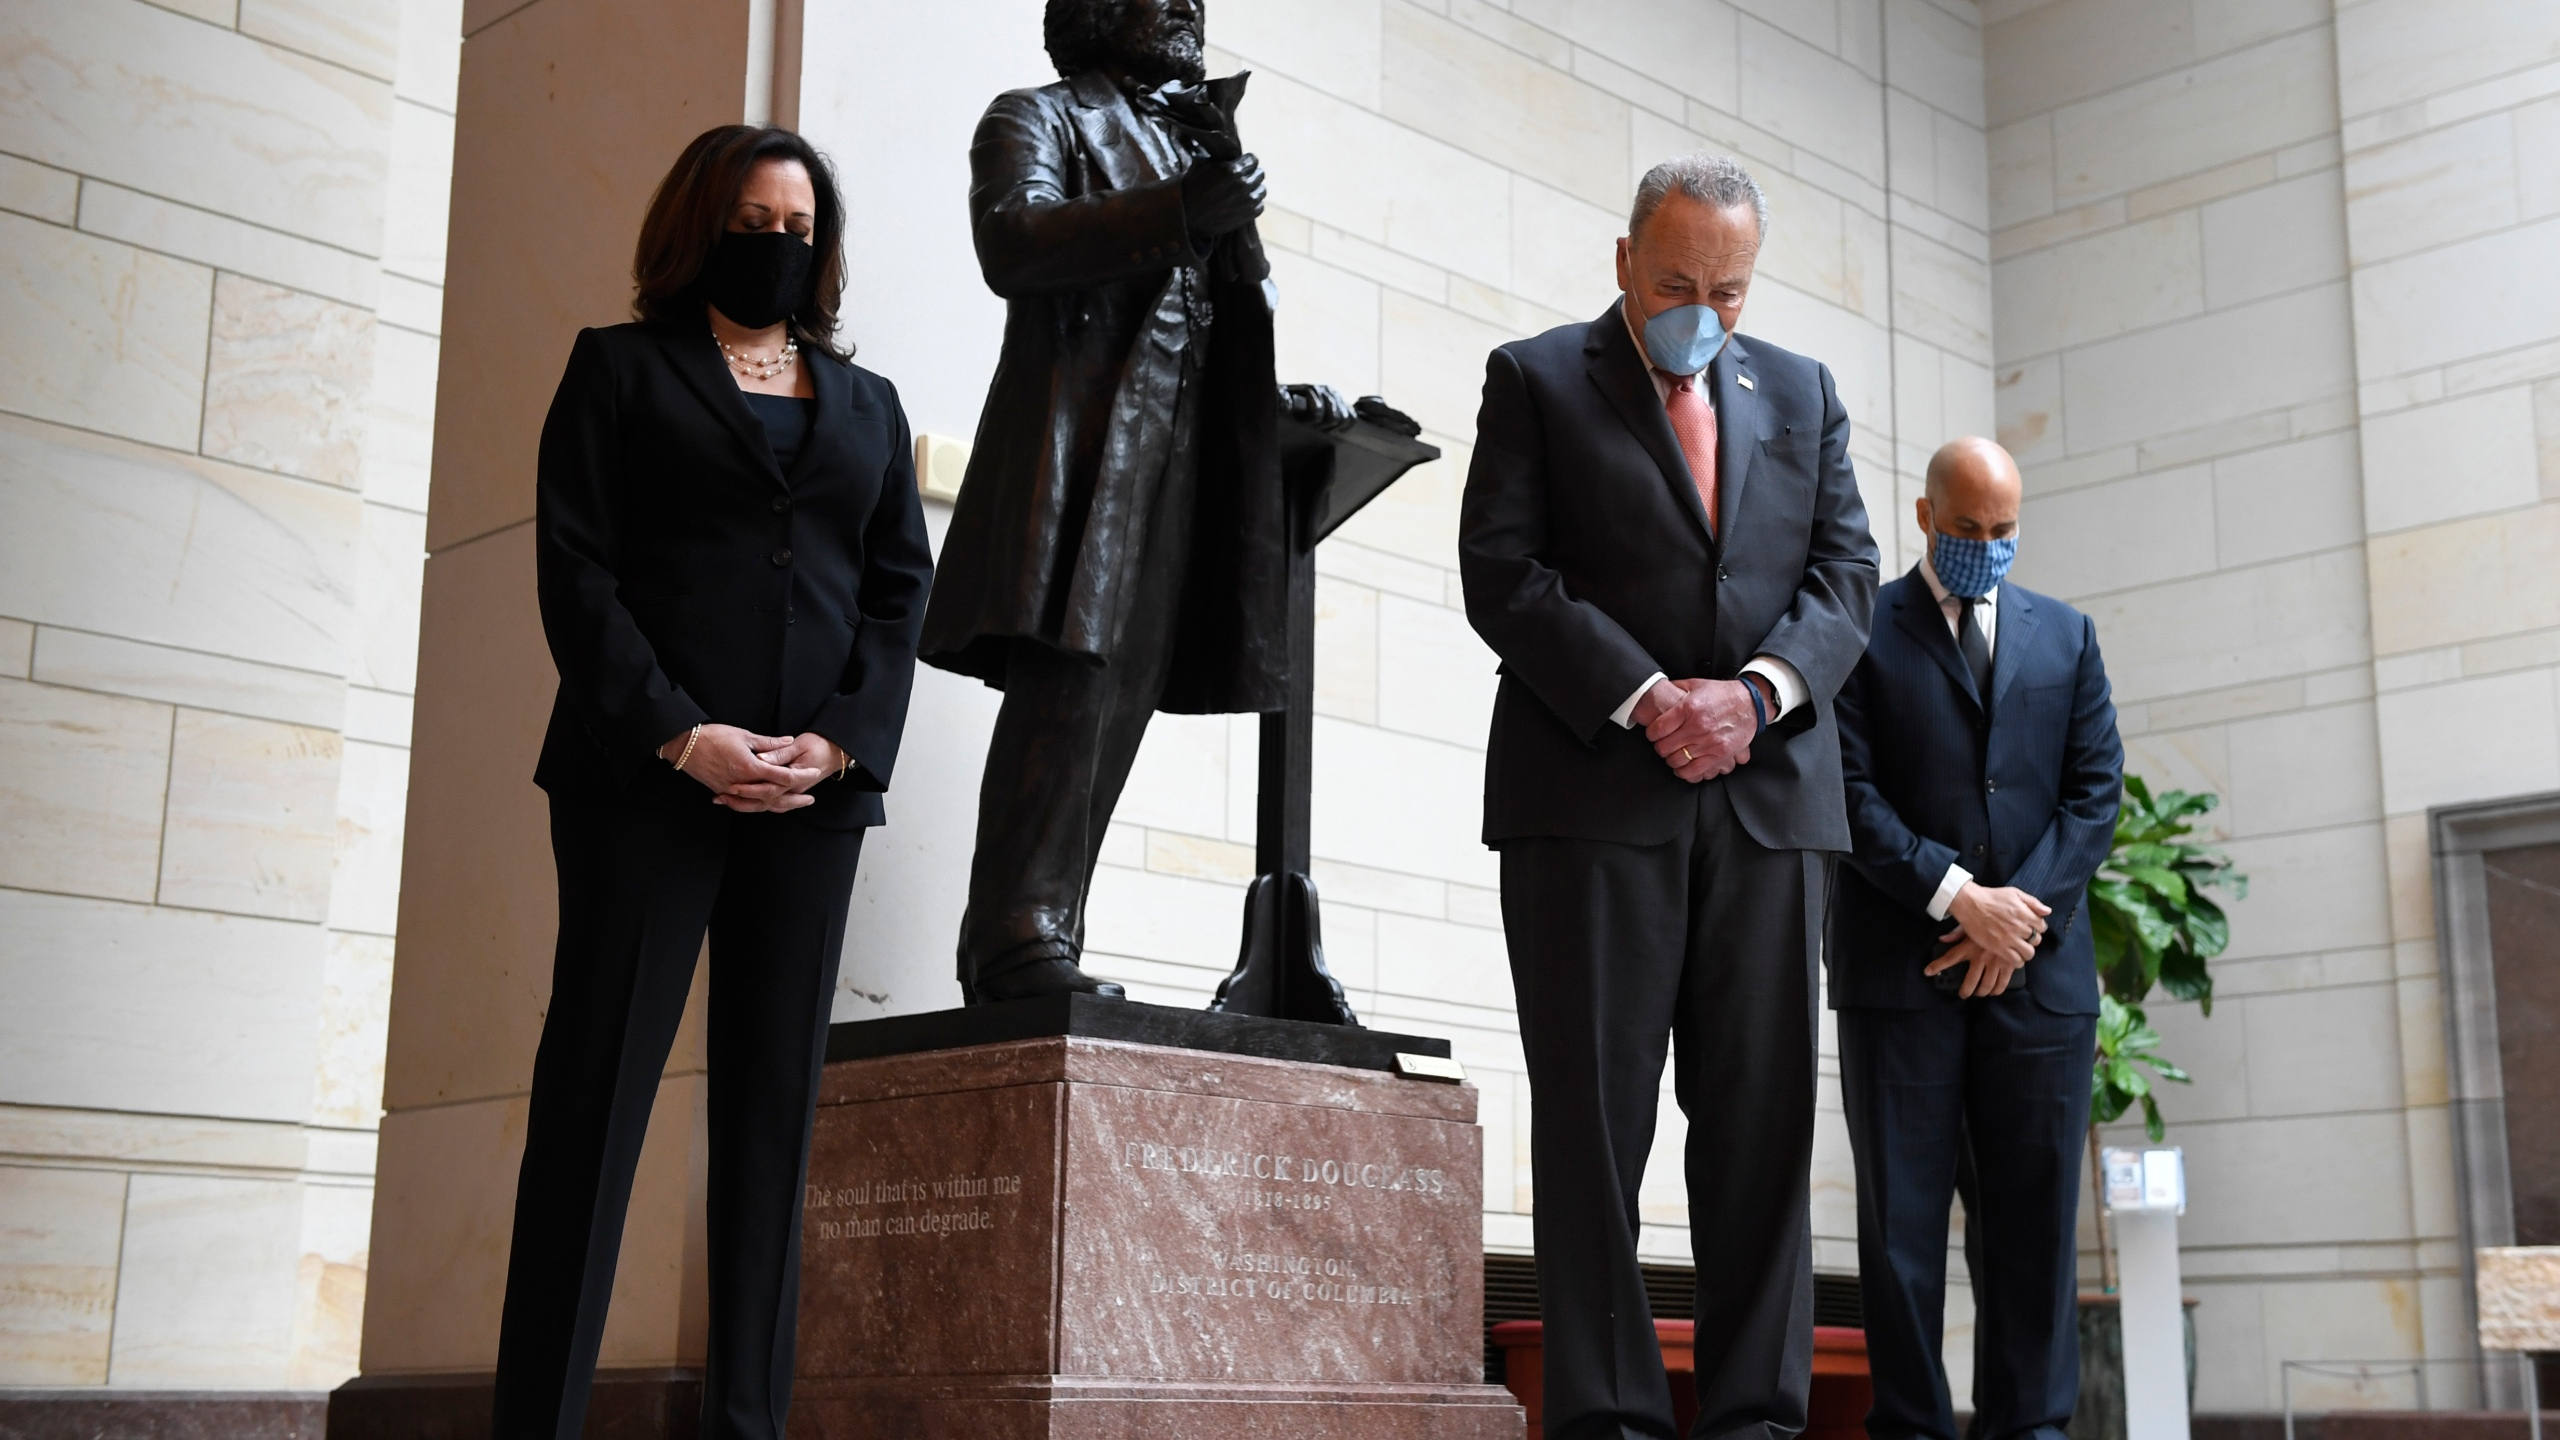 Standing near a statue of Frederick Douglass, Sen. Kamala Harris, D-Calif., left, Senate Minority Leader Sen. Chuck Schumer of N.Y., center, and Sen. Cory Booker, D-N.J.,, right, pause during a prayer Capitol Hill in Washington, Thursday, June 4, 2020, during an event to commemorate the life of George Floyd, who died after being restrained by Minneapolis police officers. (AP Photo/Susan Walsh)